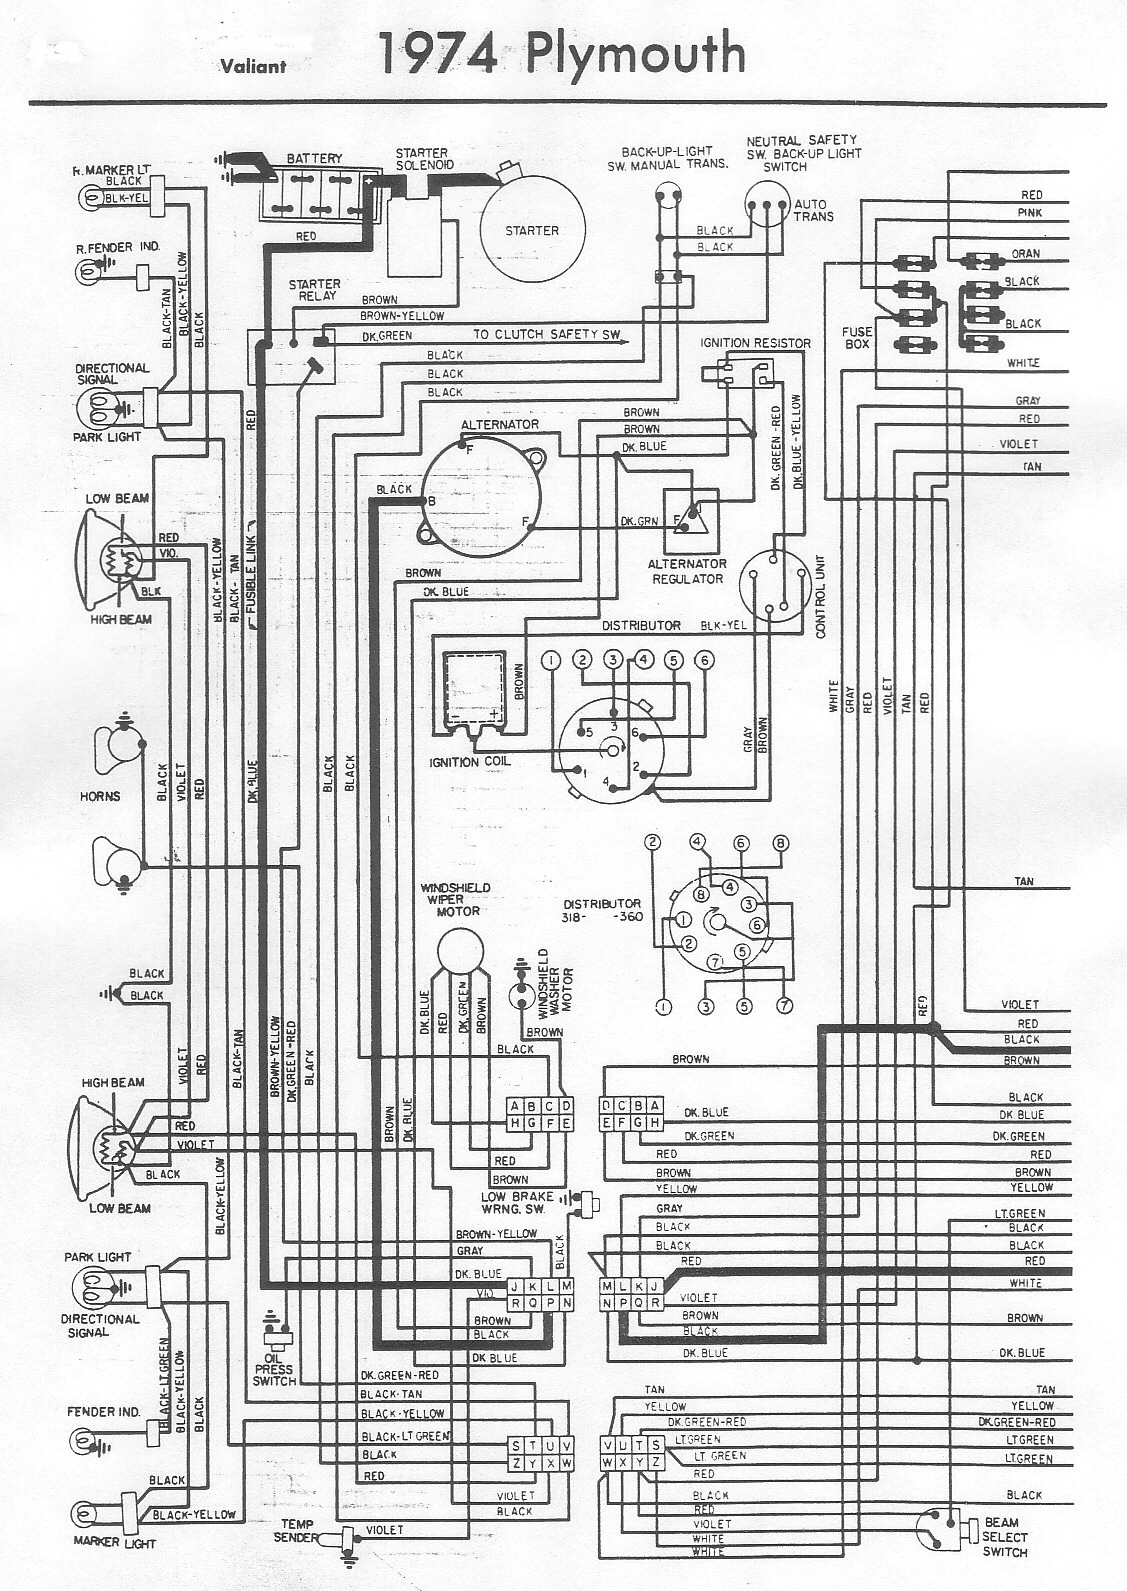 Duster Steering Column Wiring Diagram Free For You 78 Chevy Van Harness 74 Plymouth Satellite Diagrams Scematic Rh 59 Jessicadonath De Tilt